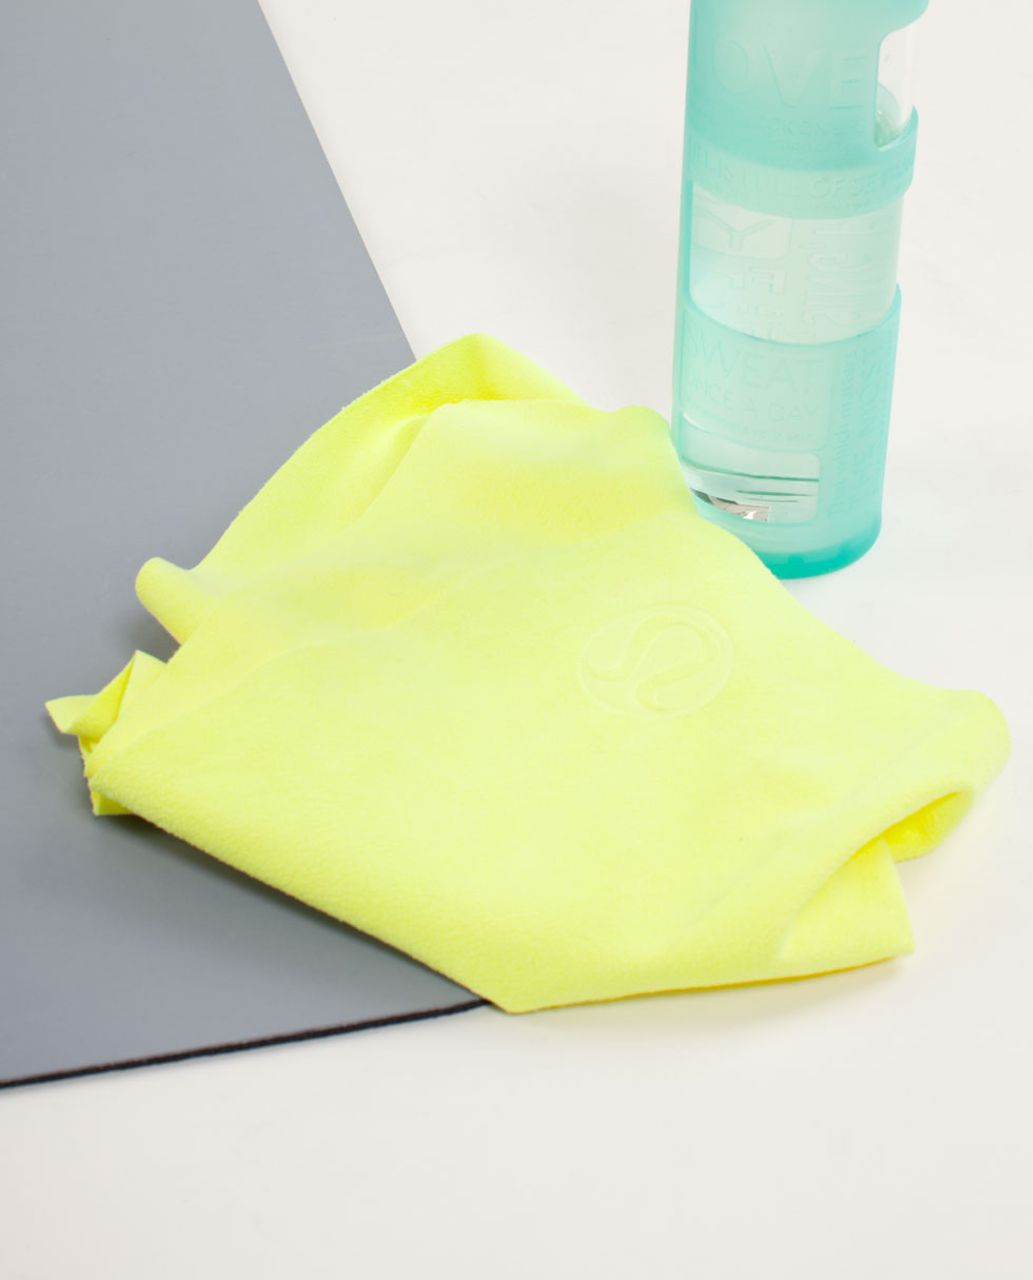 Lululemon The (Small) Towel - Clarity Yellow